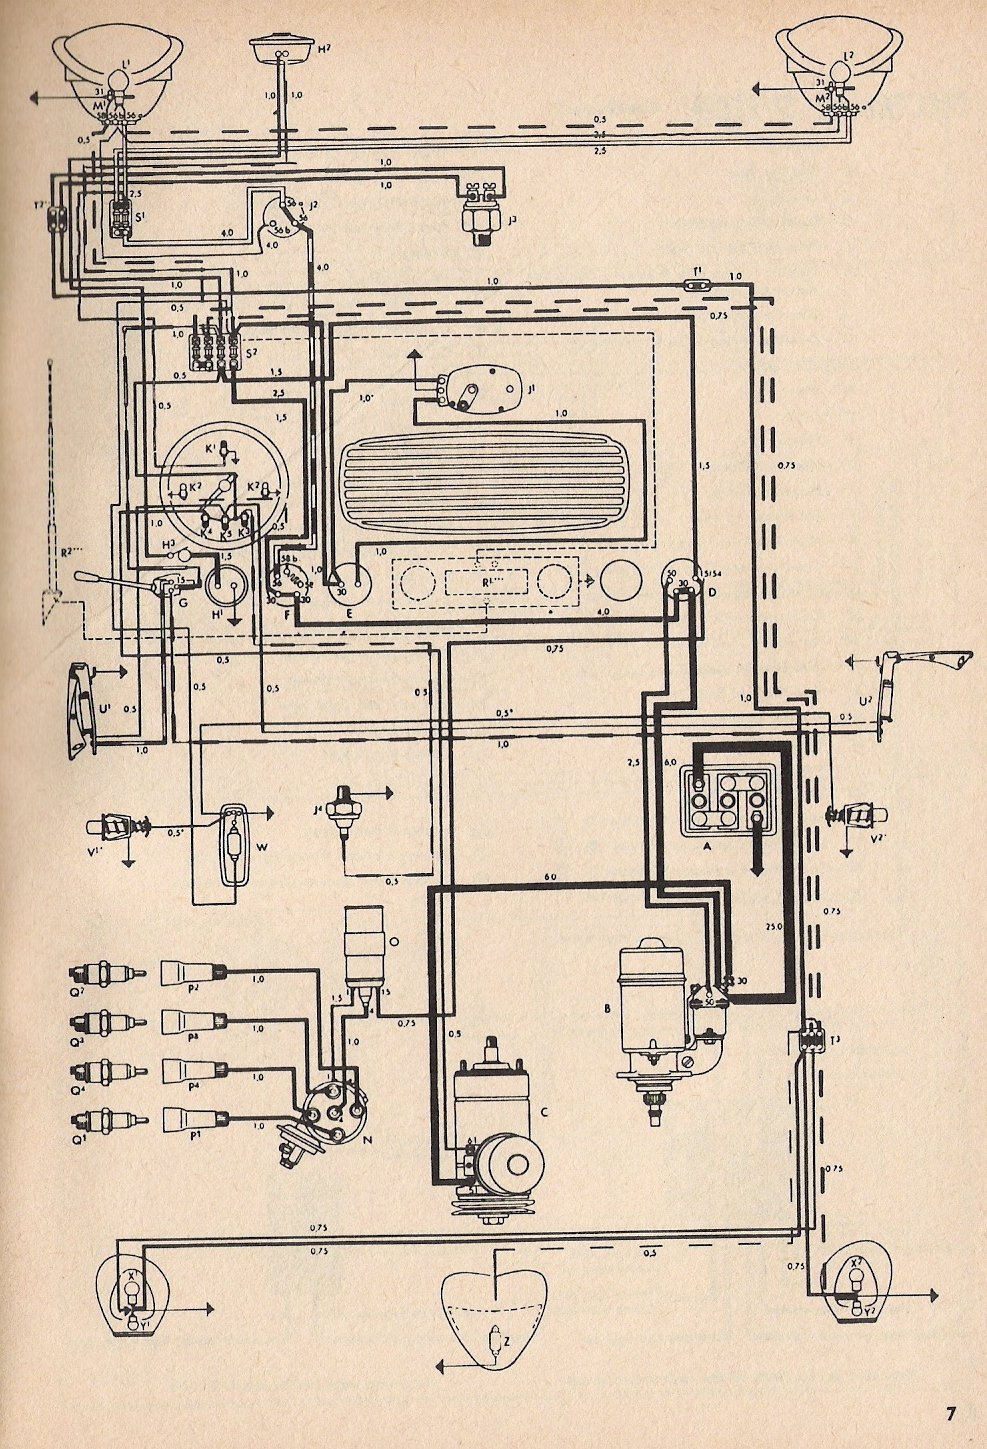 Type 1 Wiring Diagrams 1973 Dodge Truck Harness